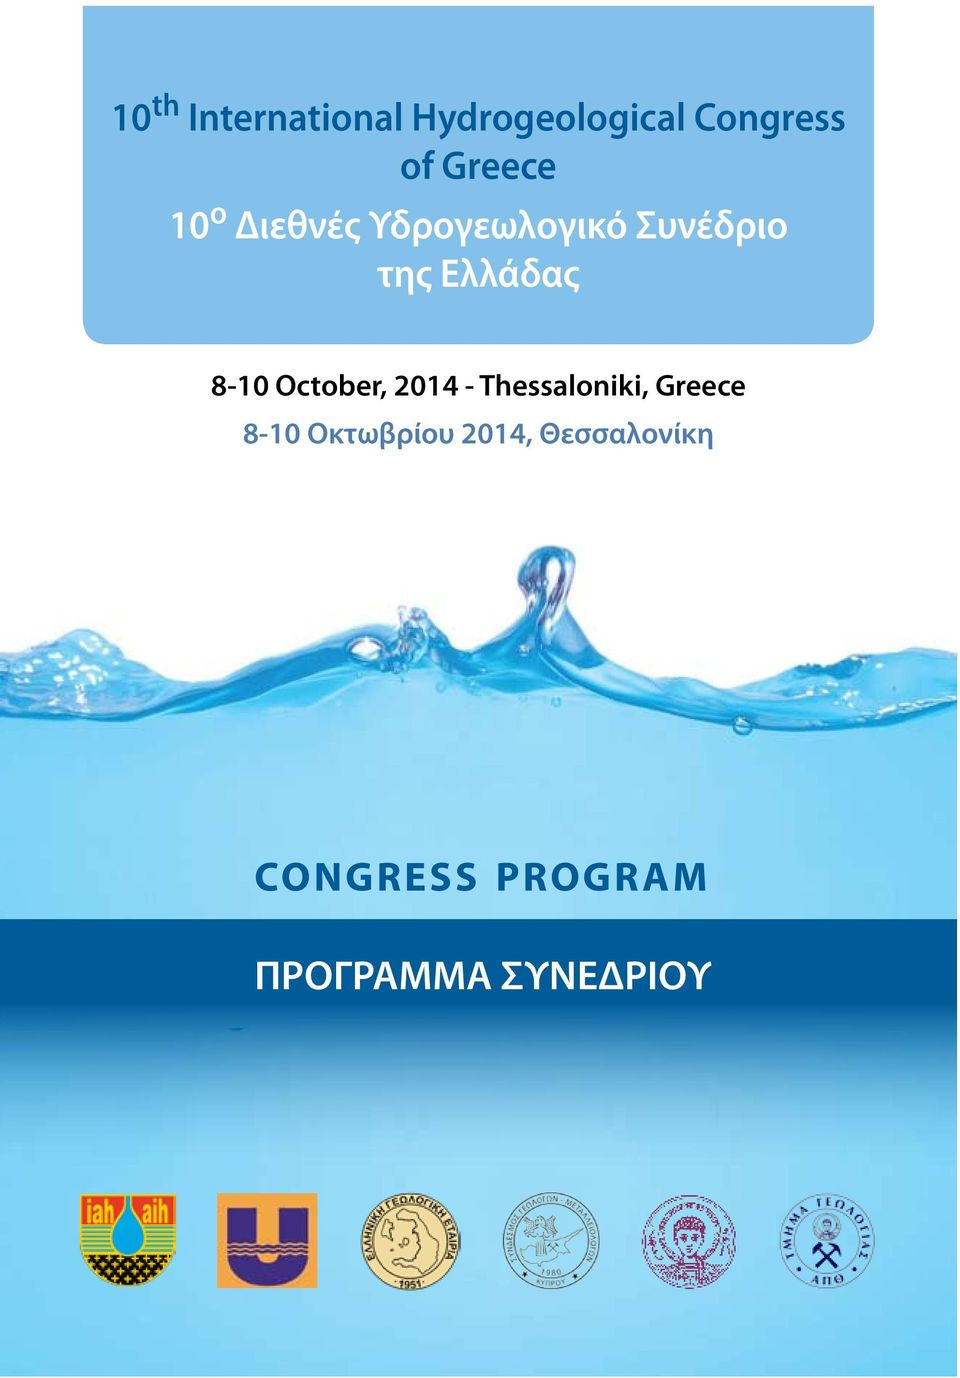 Ελλάδας 8-10 October, 2014 - Thessaloniki, Greece